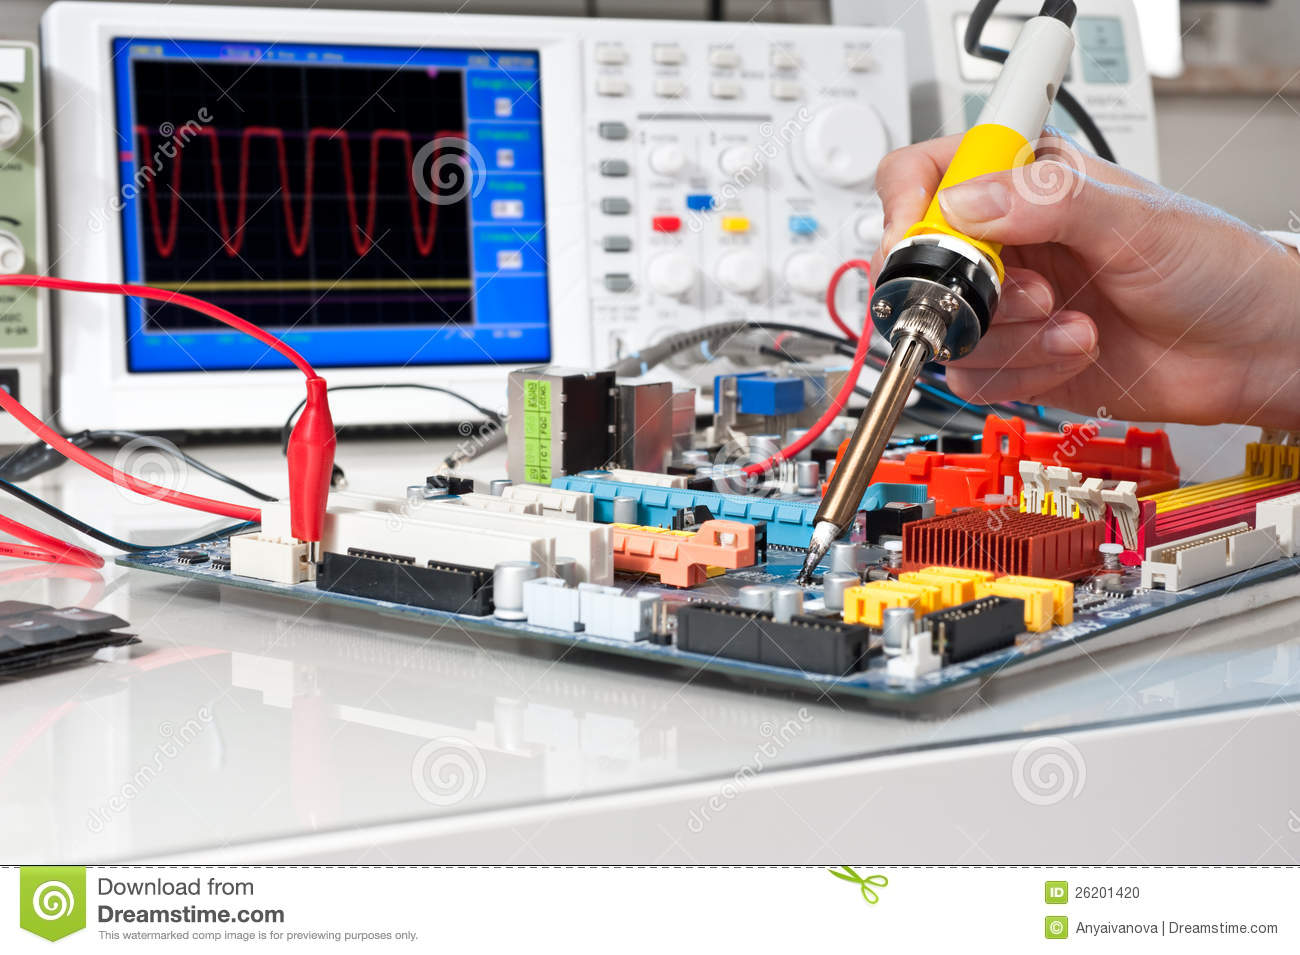 Electronic Equipment Repairing In Service Centre Stock Photo  Image of hands hardware 26201420